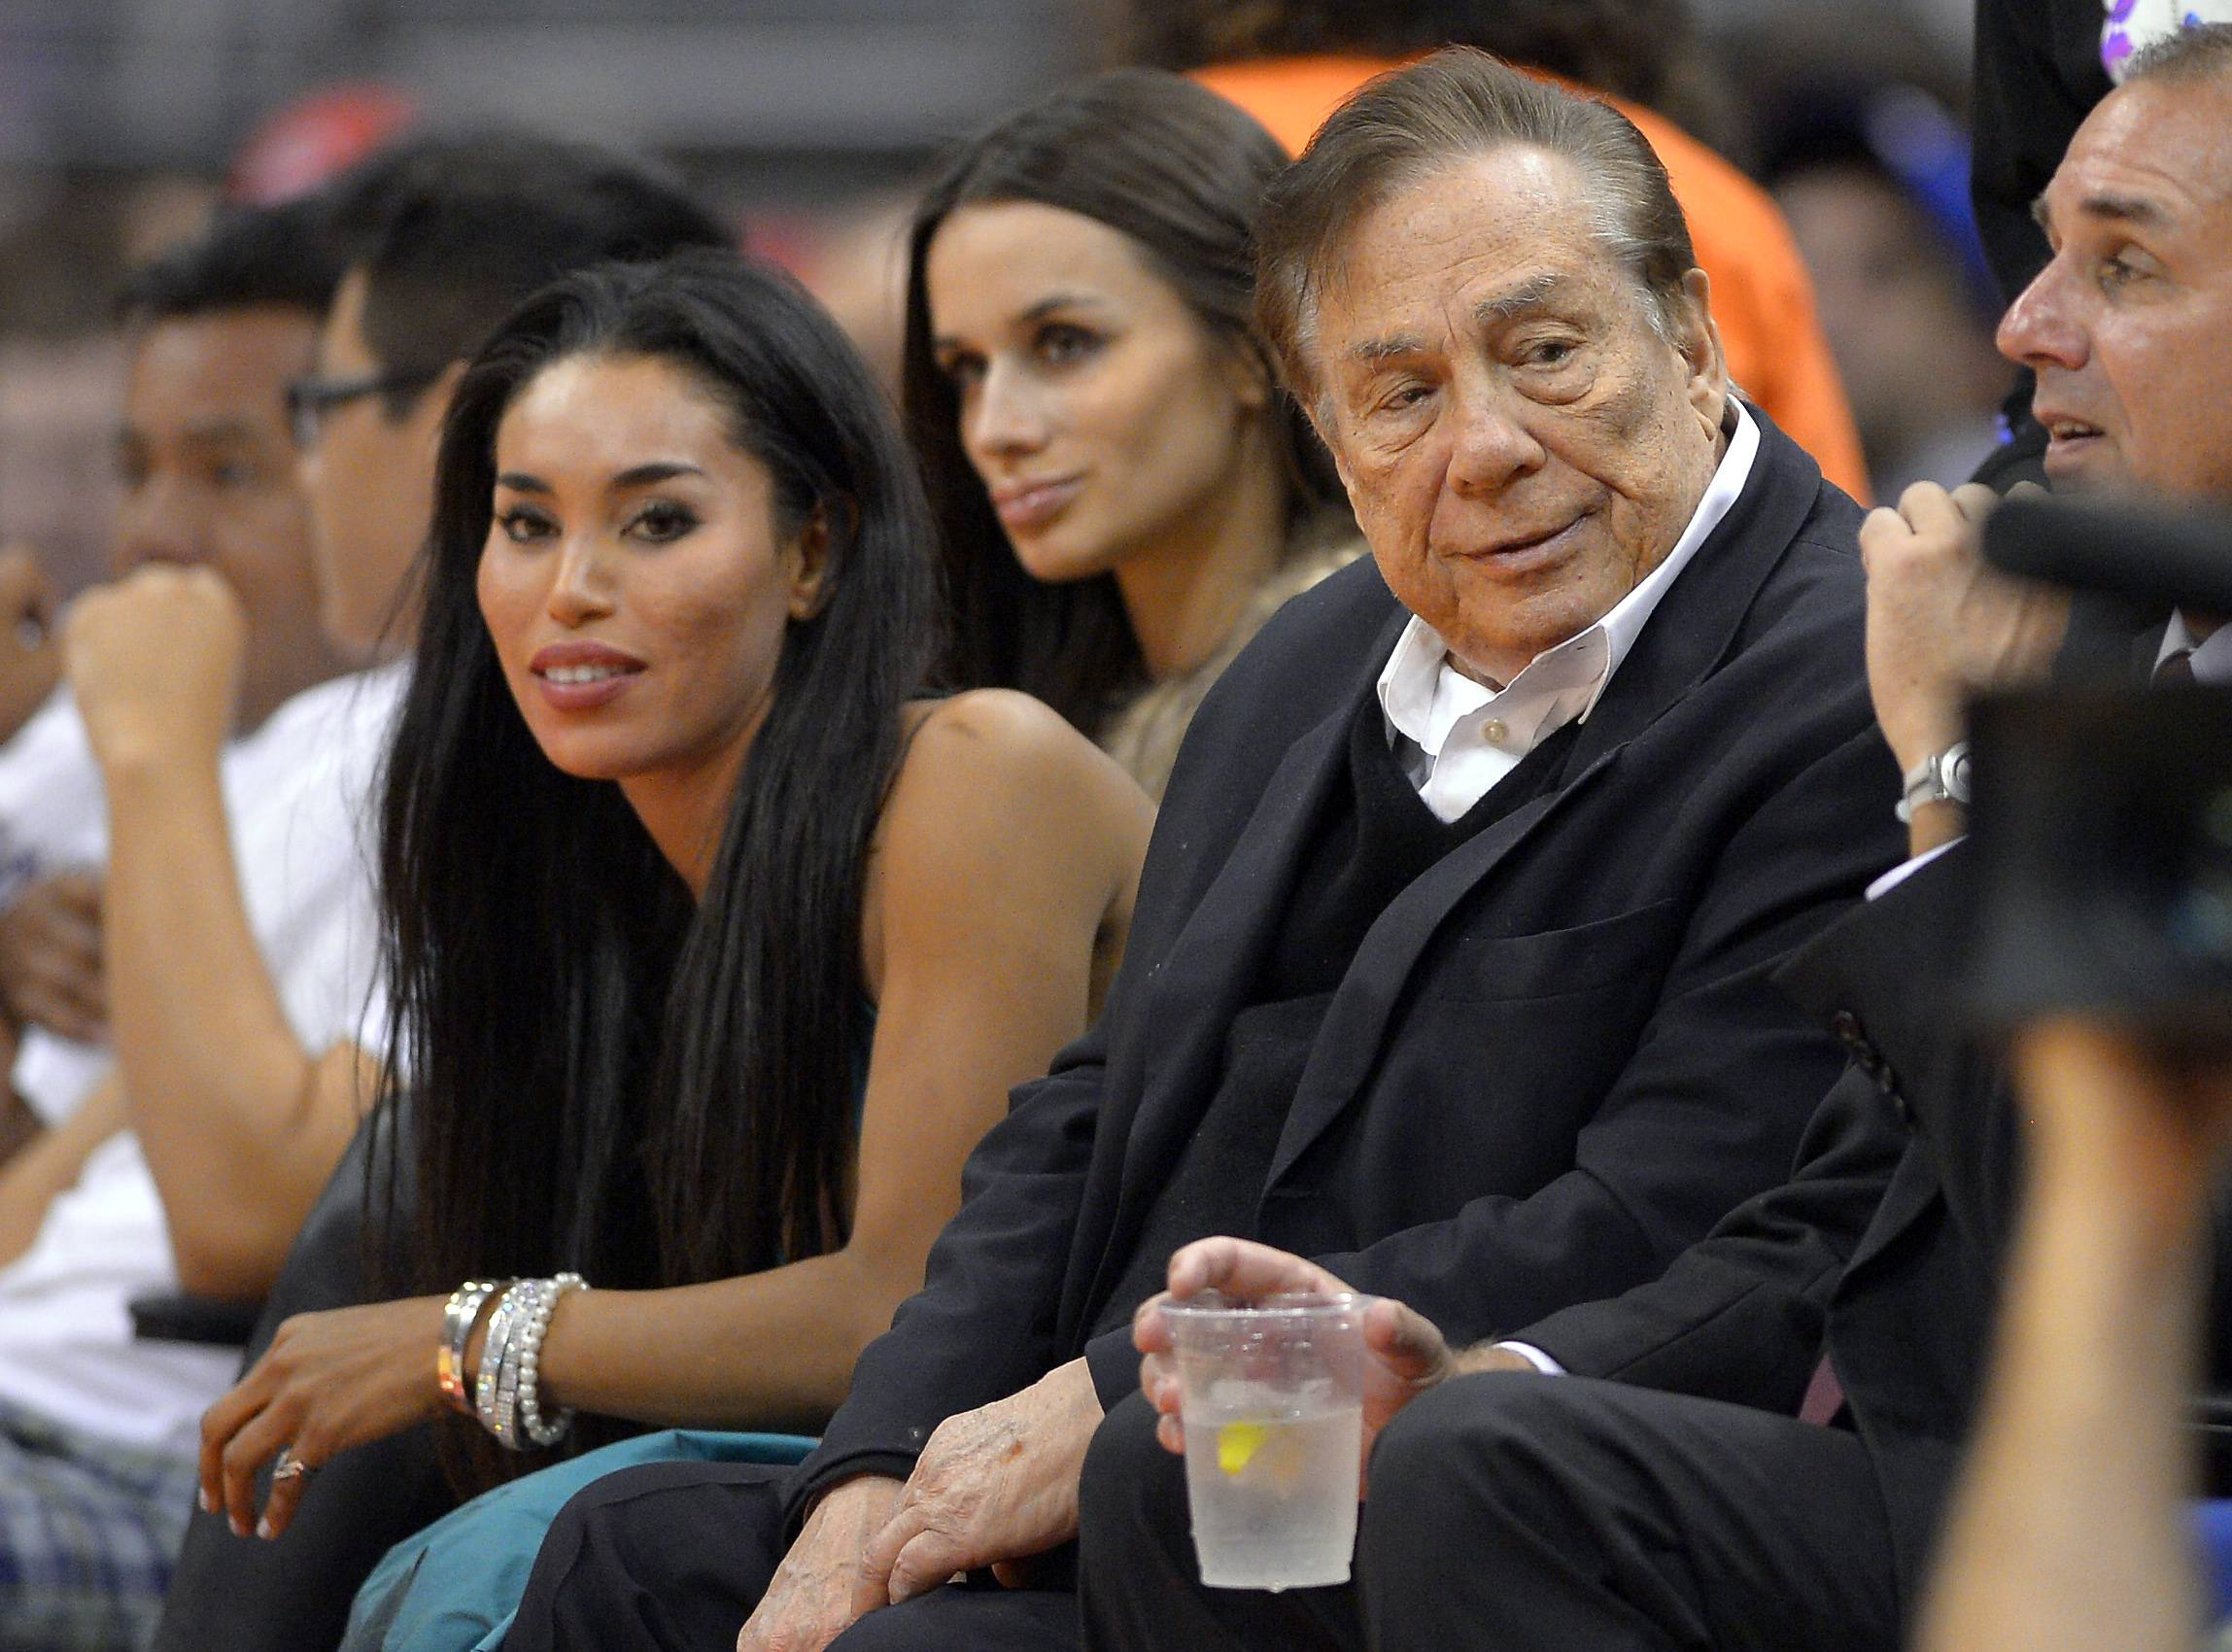 Los Angeles Clippers owner Donald Sterling, right, and V. Stiviano, left, watch the Clippers play the Sacramento Kings during the first half of an NBA basketball game in Los Angeles on Oct. 25, 2013.